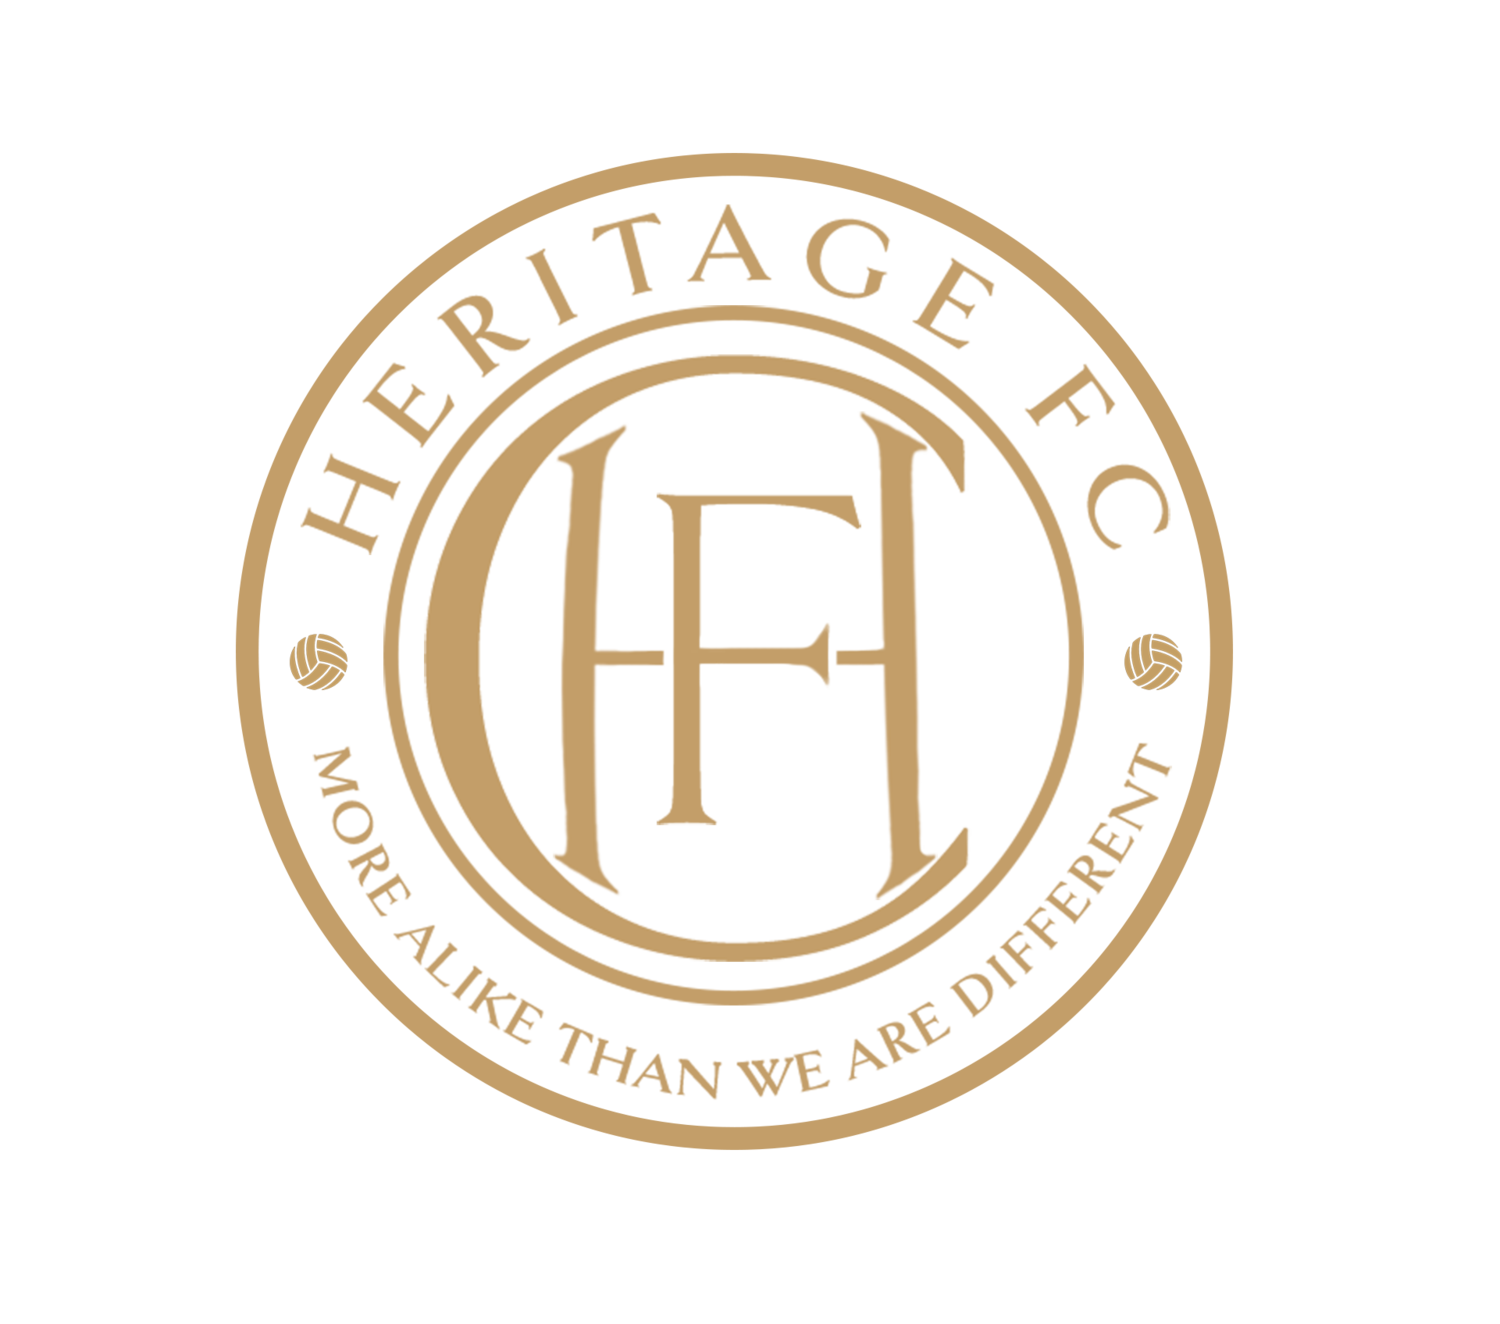 Heritage Football Club